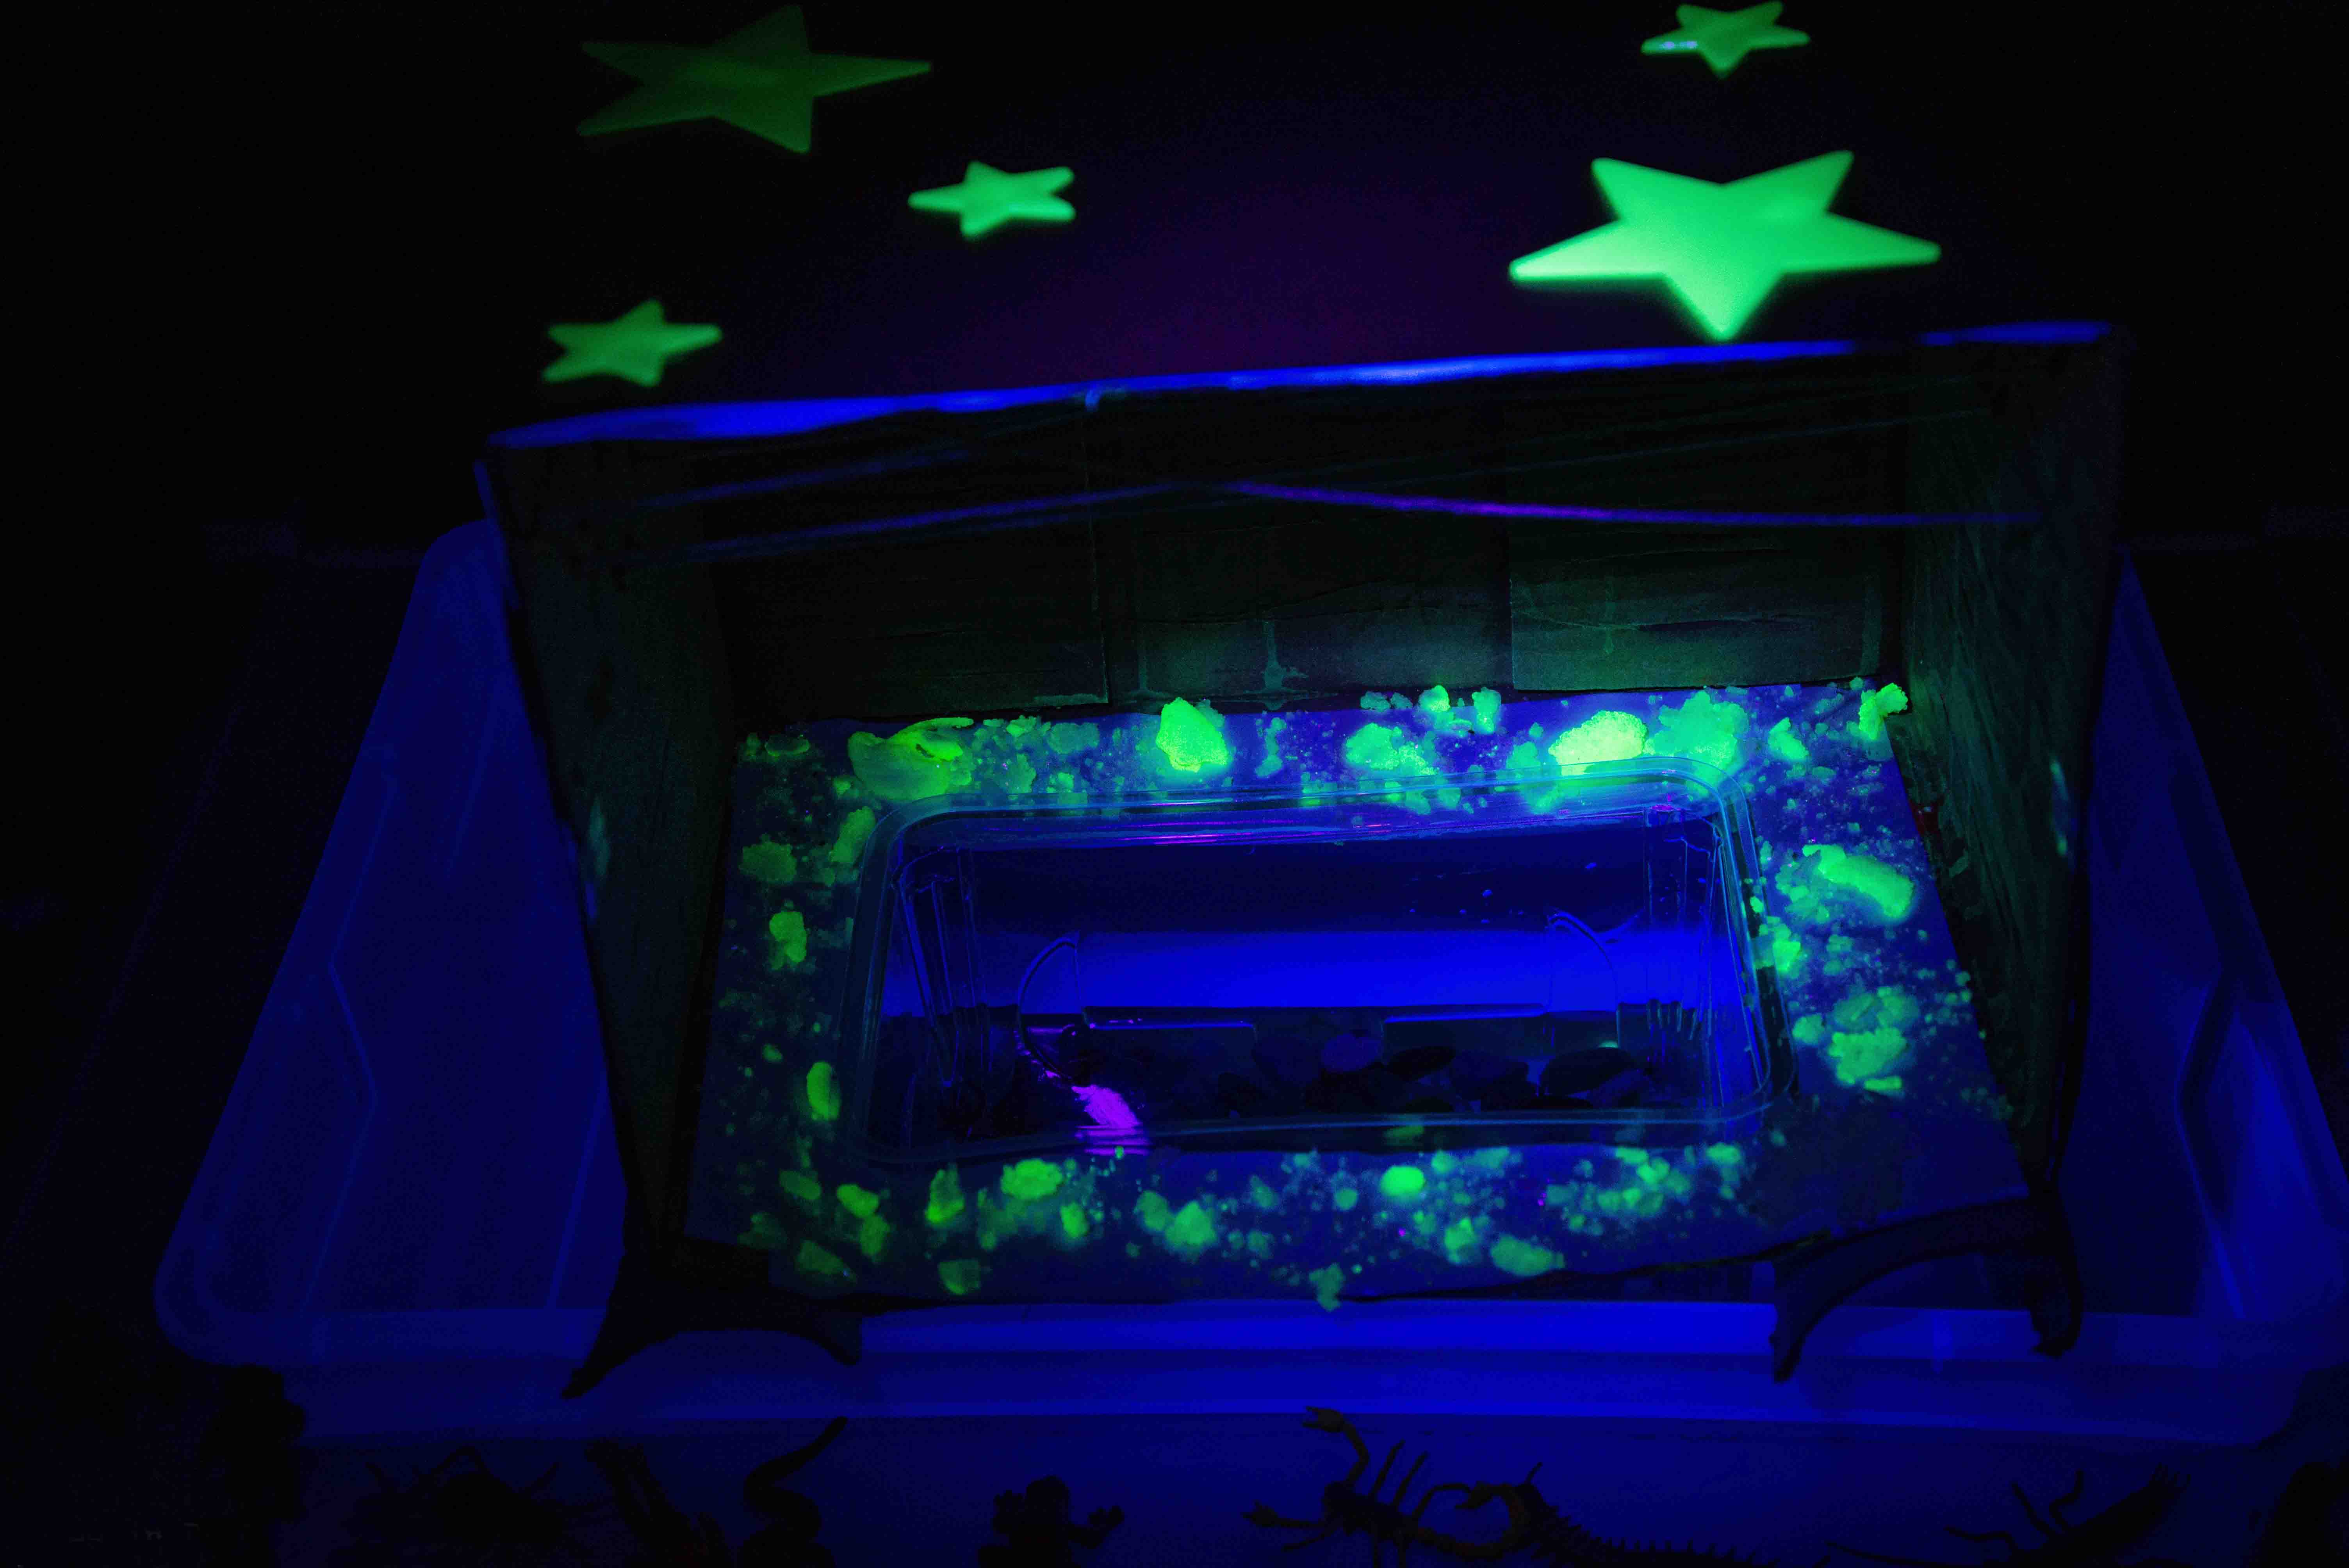 Grow your own glowing crystals, and then make a crystal cave small world with them! A Halloween themed learning activity from Babes in Deutschland!